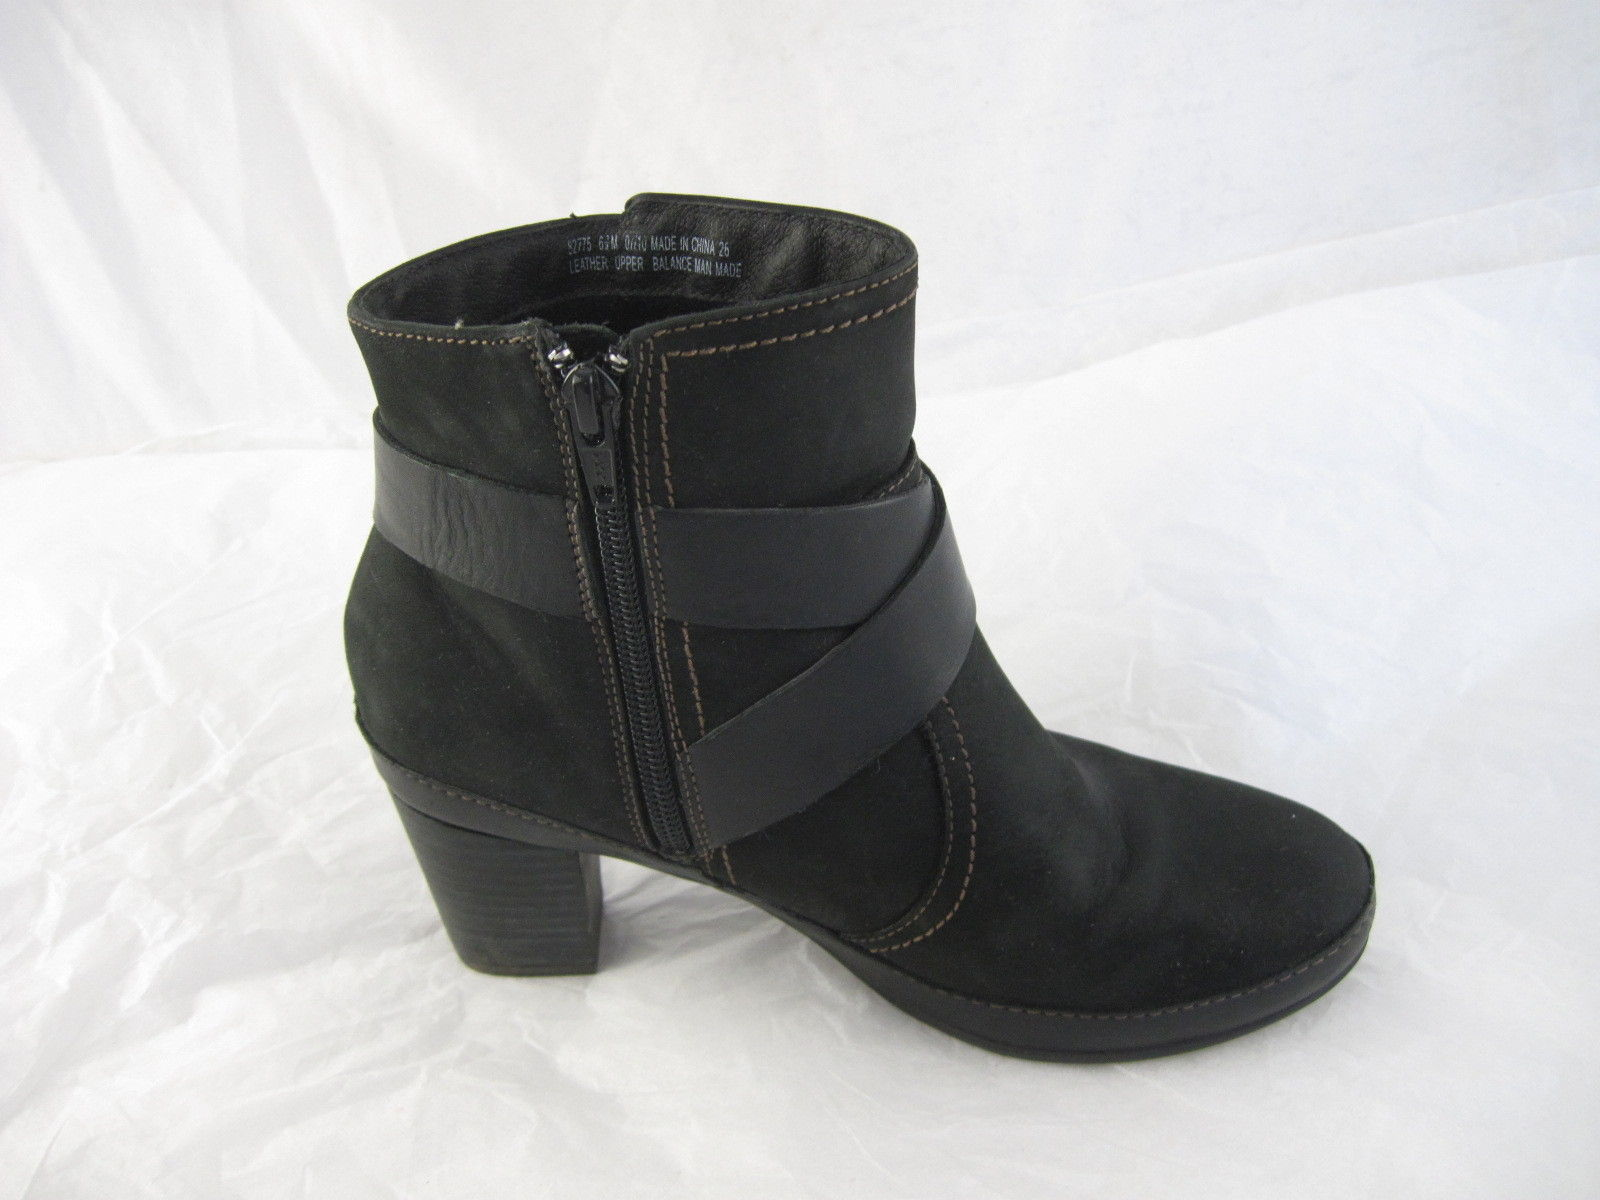 ... ladies ankle boots shoes 82775. prev aqnsuvw